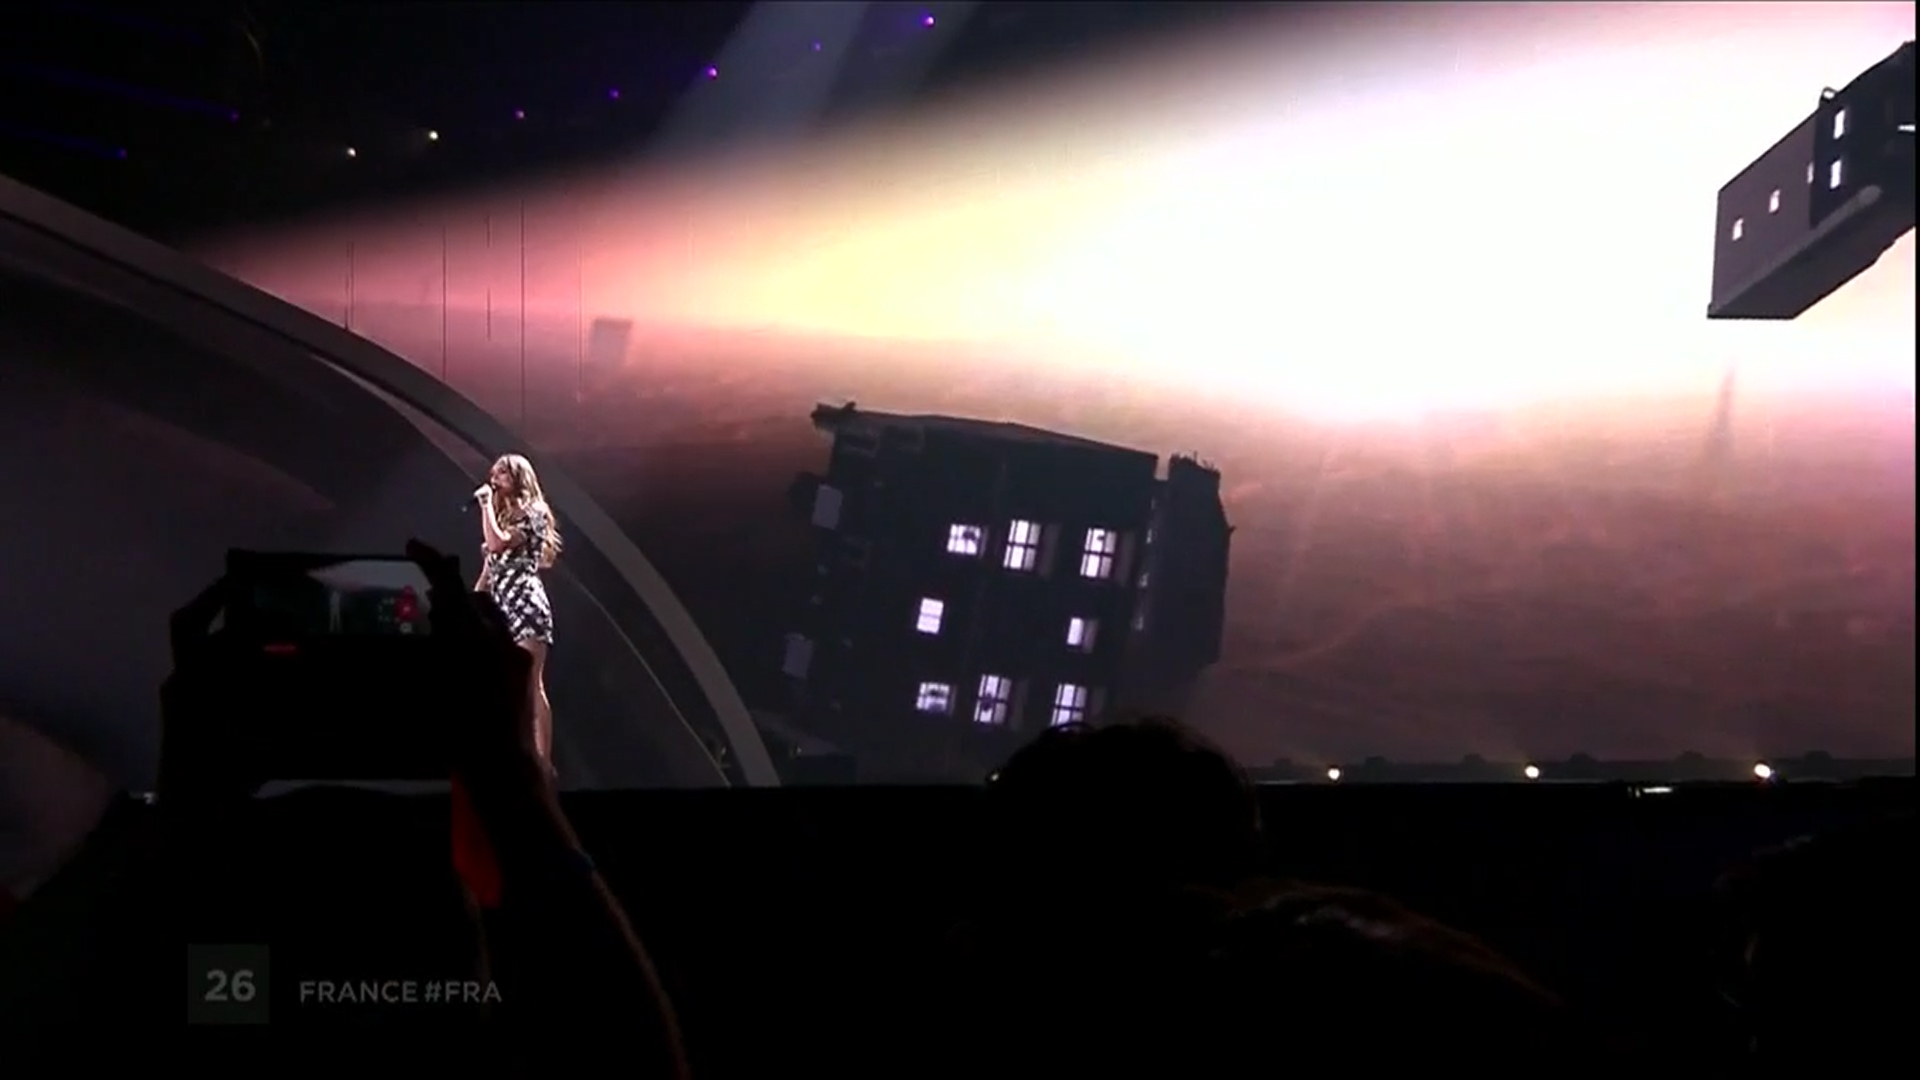 Eurovision 2017: Finals – The Chaotic Neutral